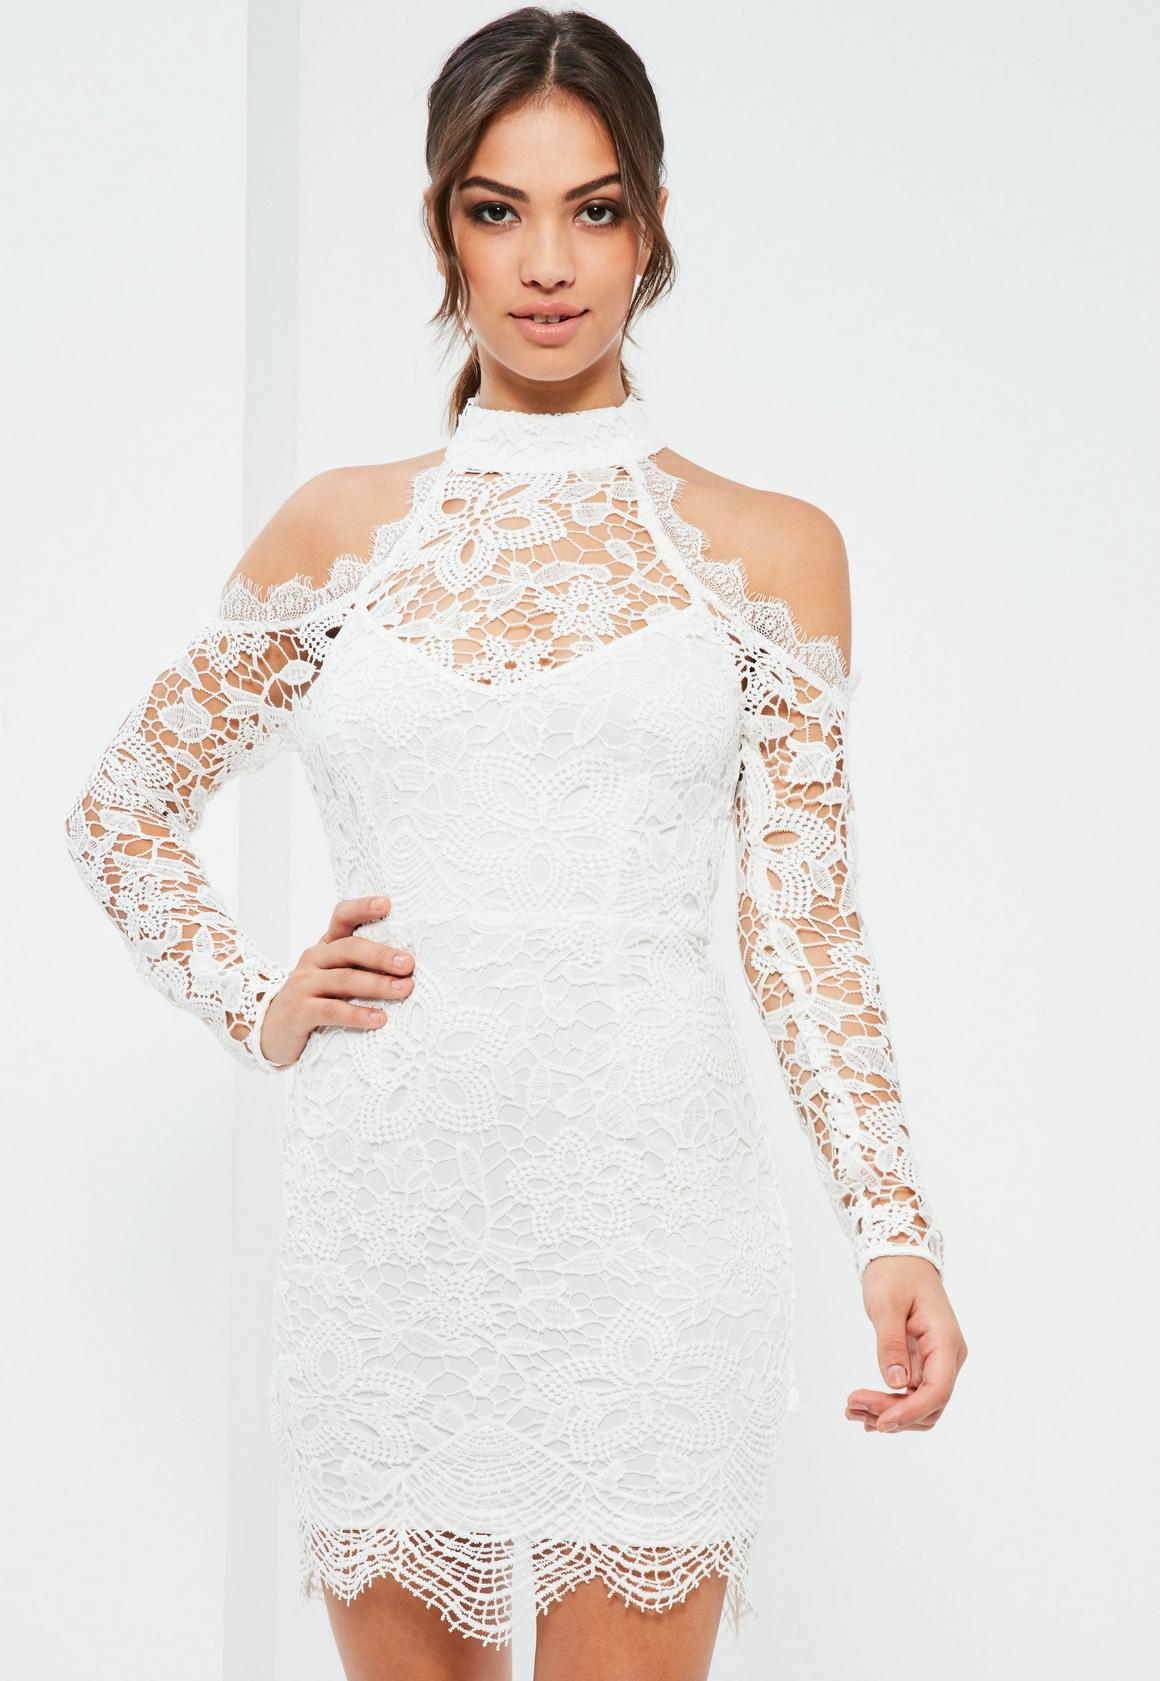 Lace Dresses - Short & Long Sleeved Lace Dress   Missguided